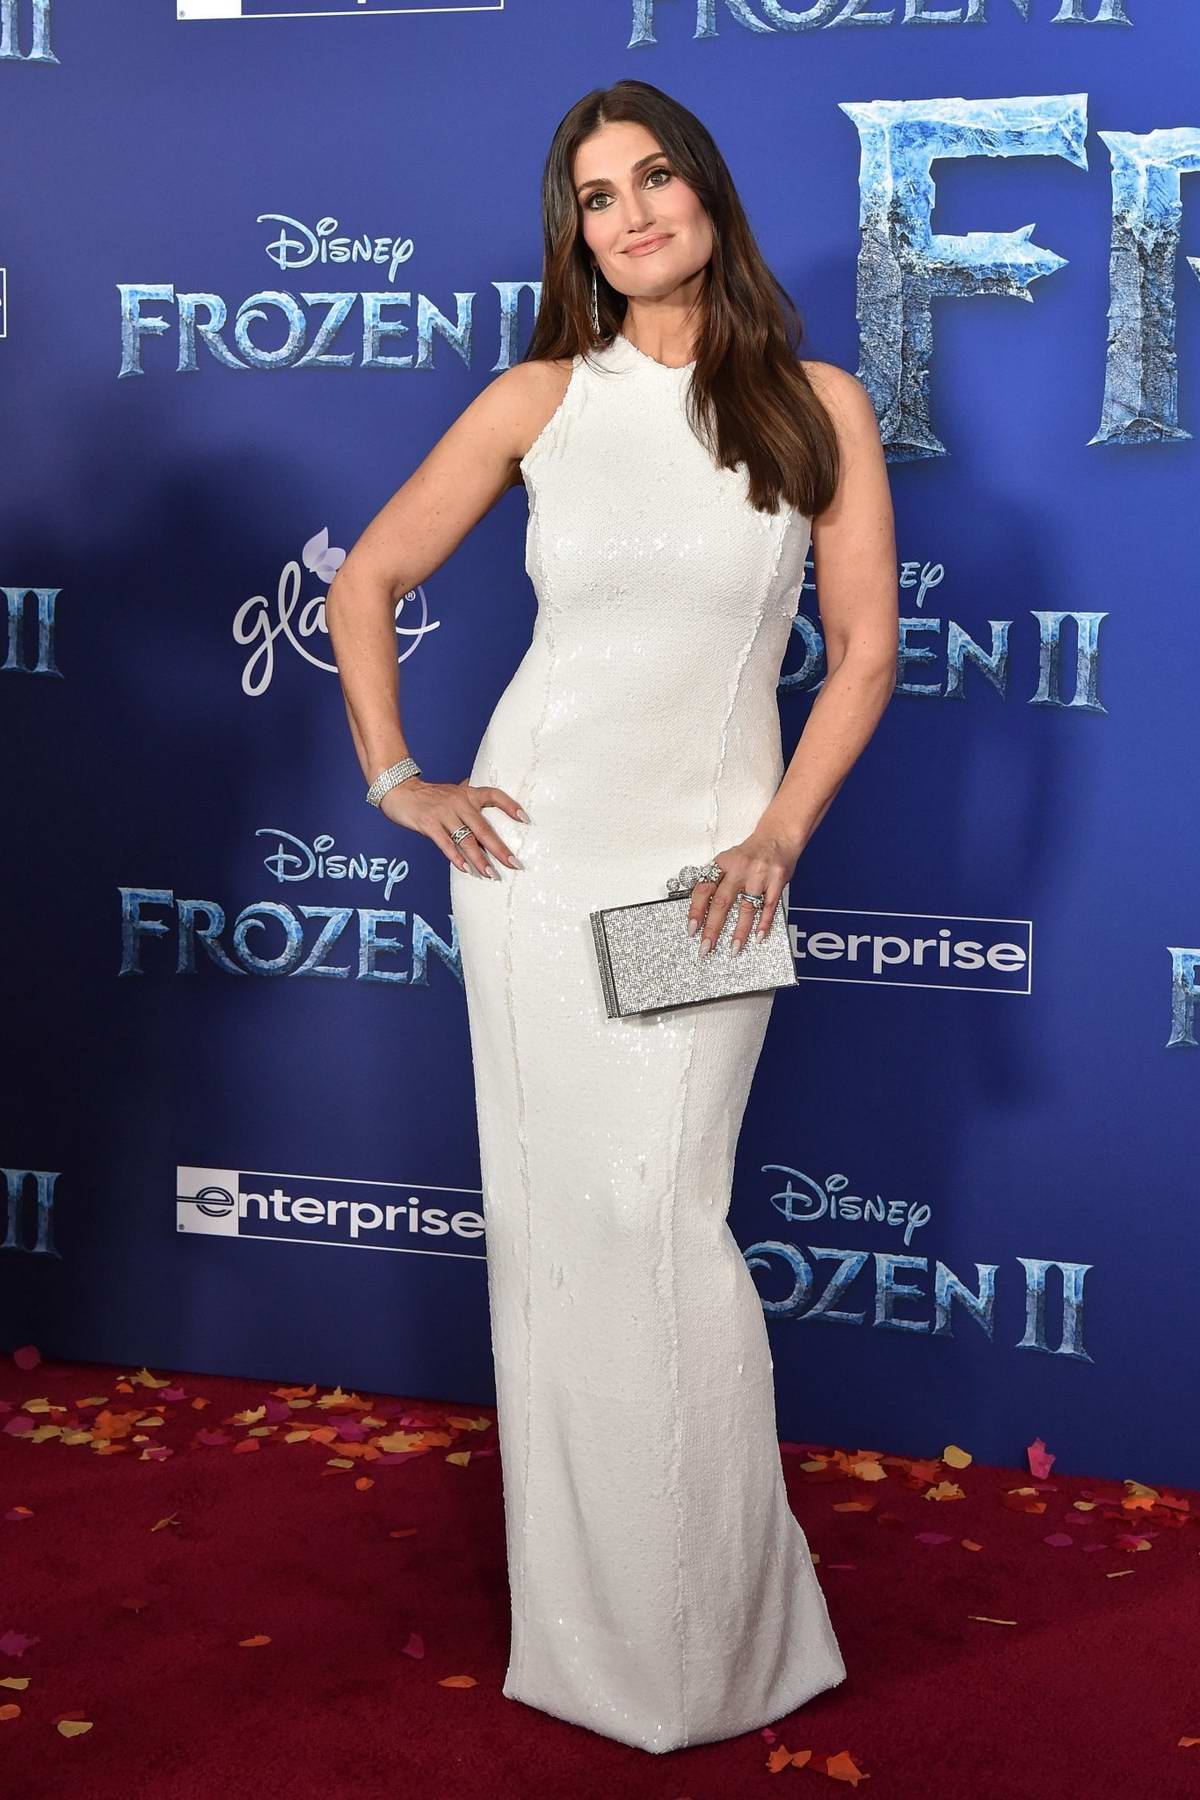 Idina Menzel attends the Premiere of Disney's 'Frozen 2' at Dolby Theatre in Hollywood, California